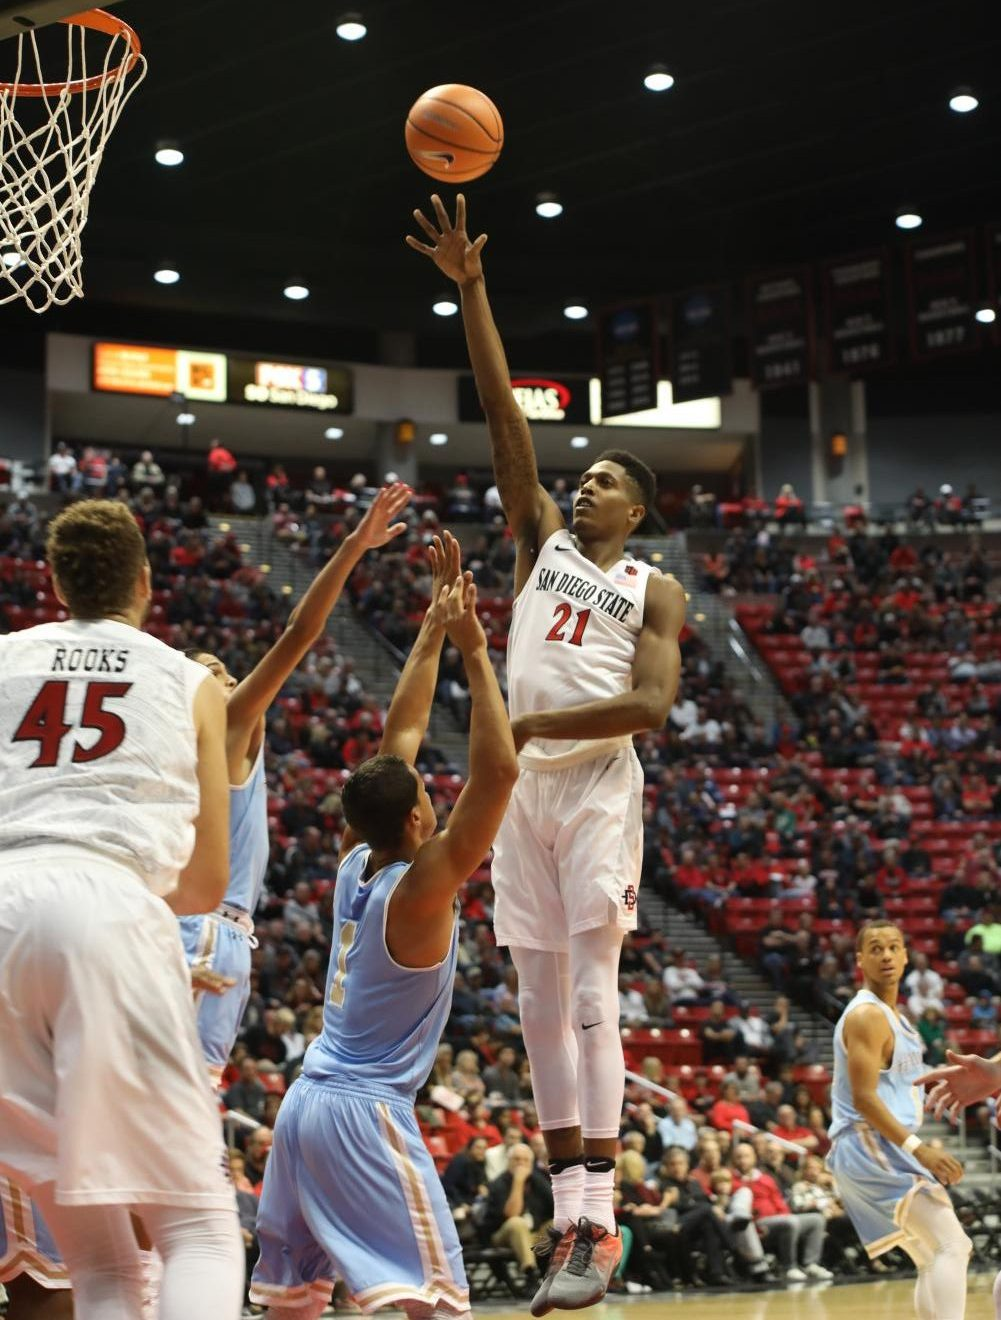 Senior forward Malik Pope puts up a floater in the first half against San Diego Christian. Pope led SDSU with 20 points in the 91-50 win.